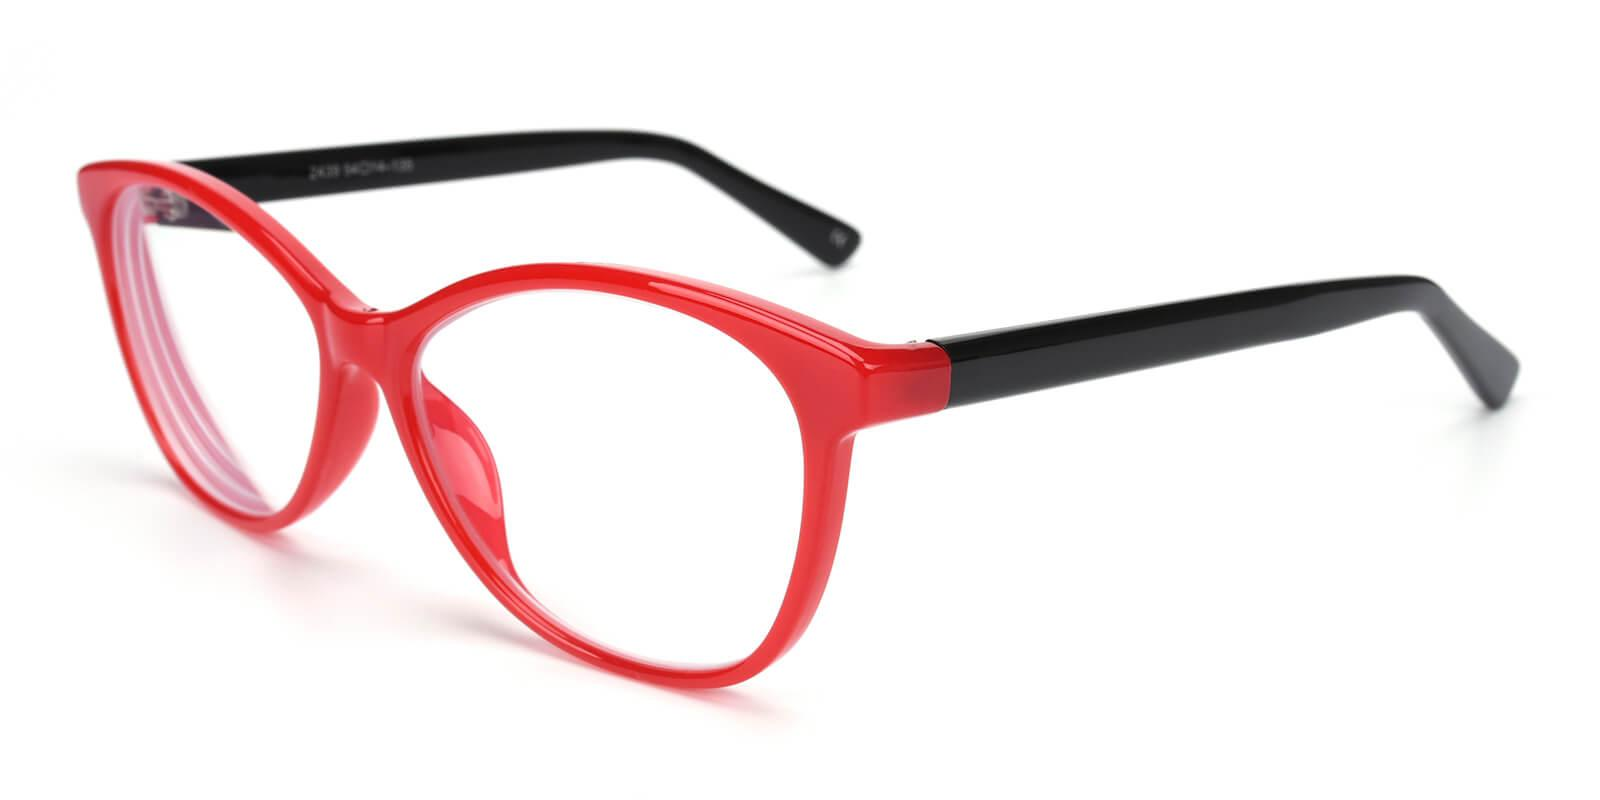 Netfertari-Red-Cat-Plastic-Eyeglasses-additional1